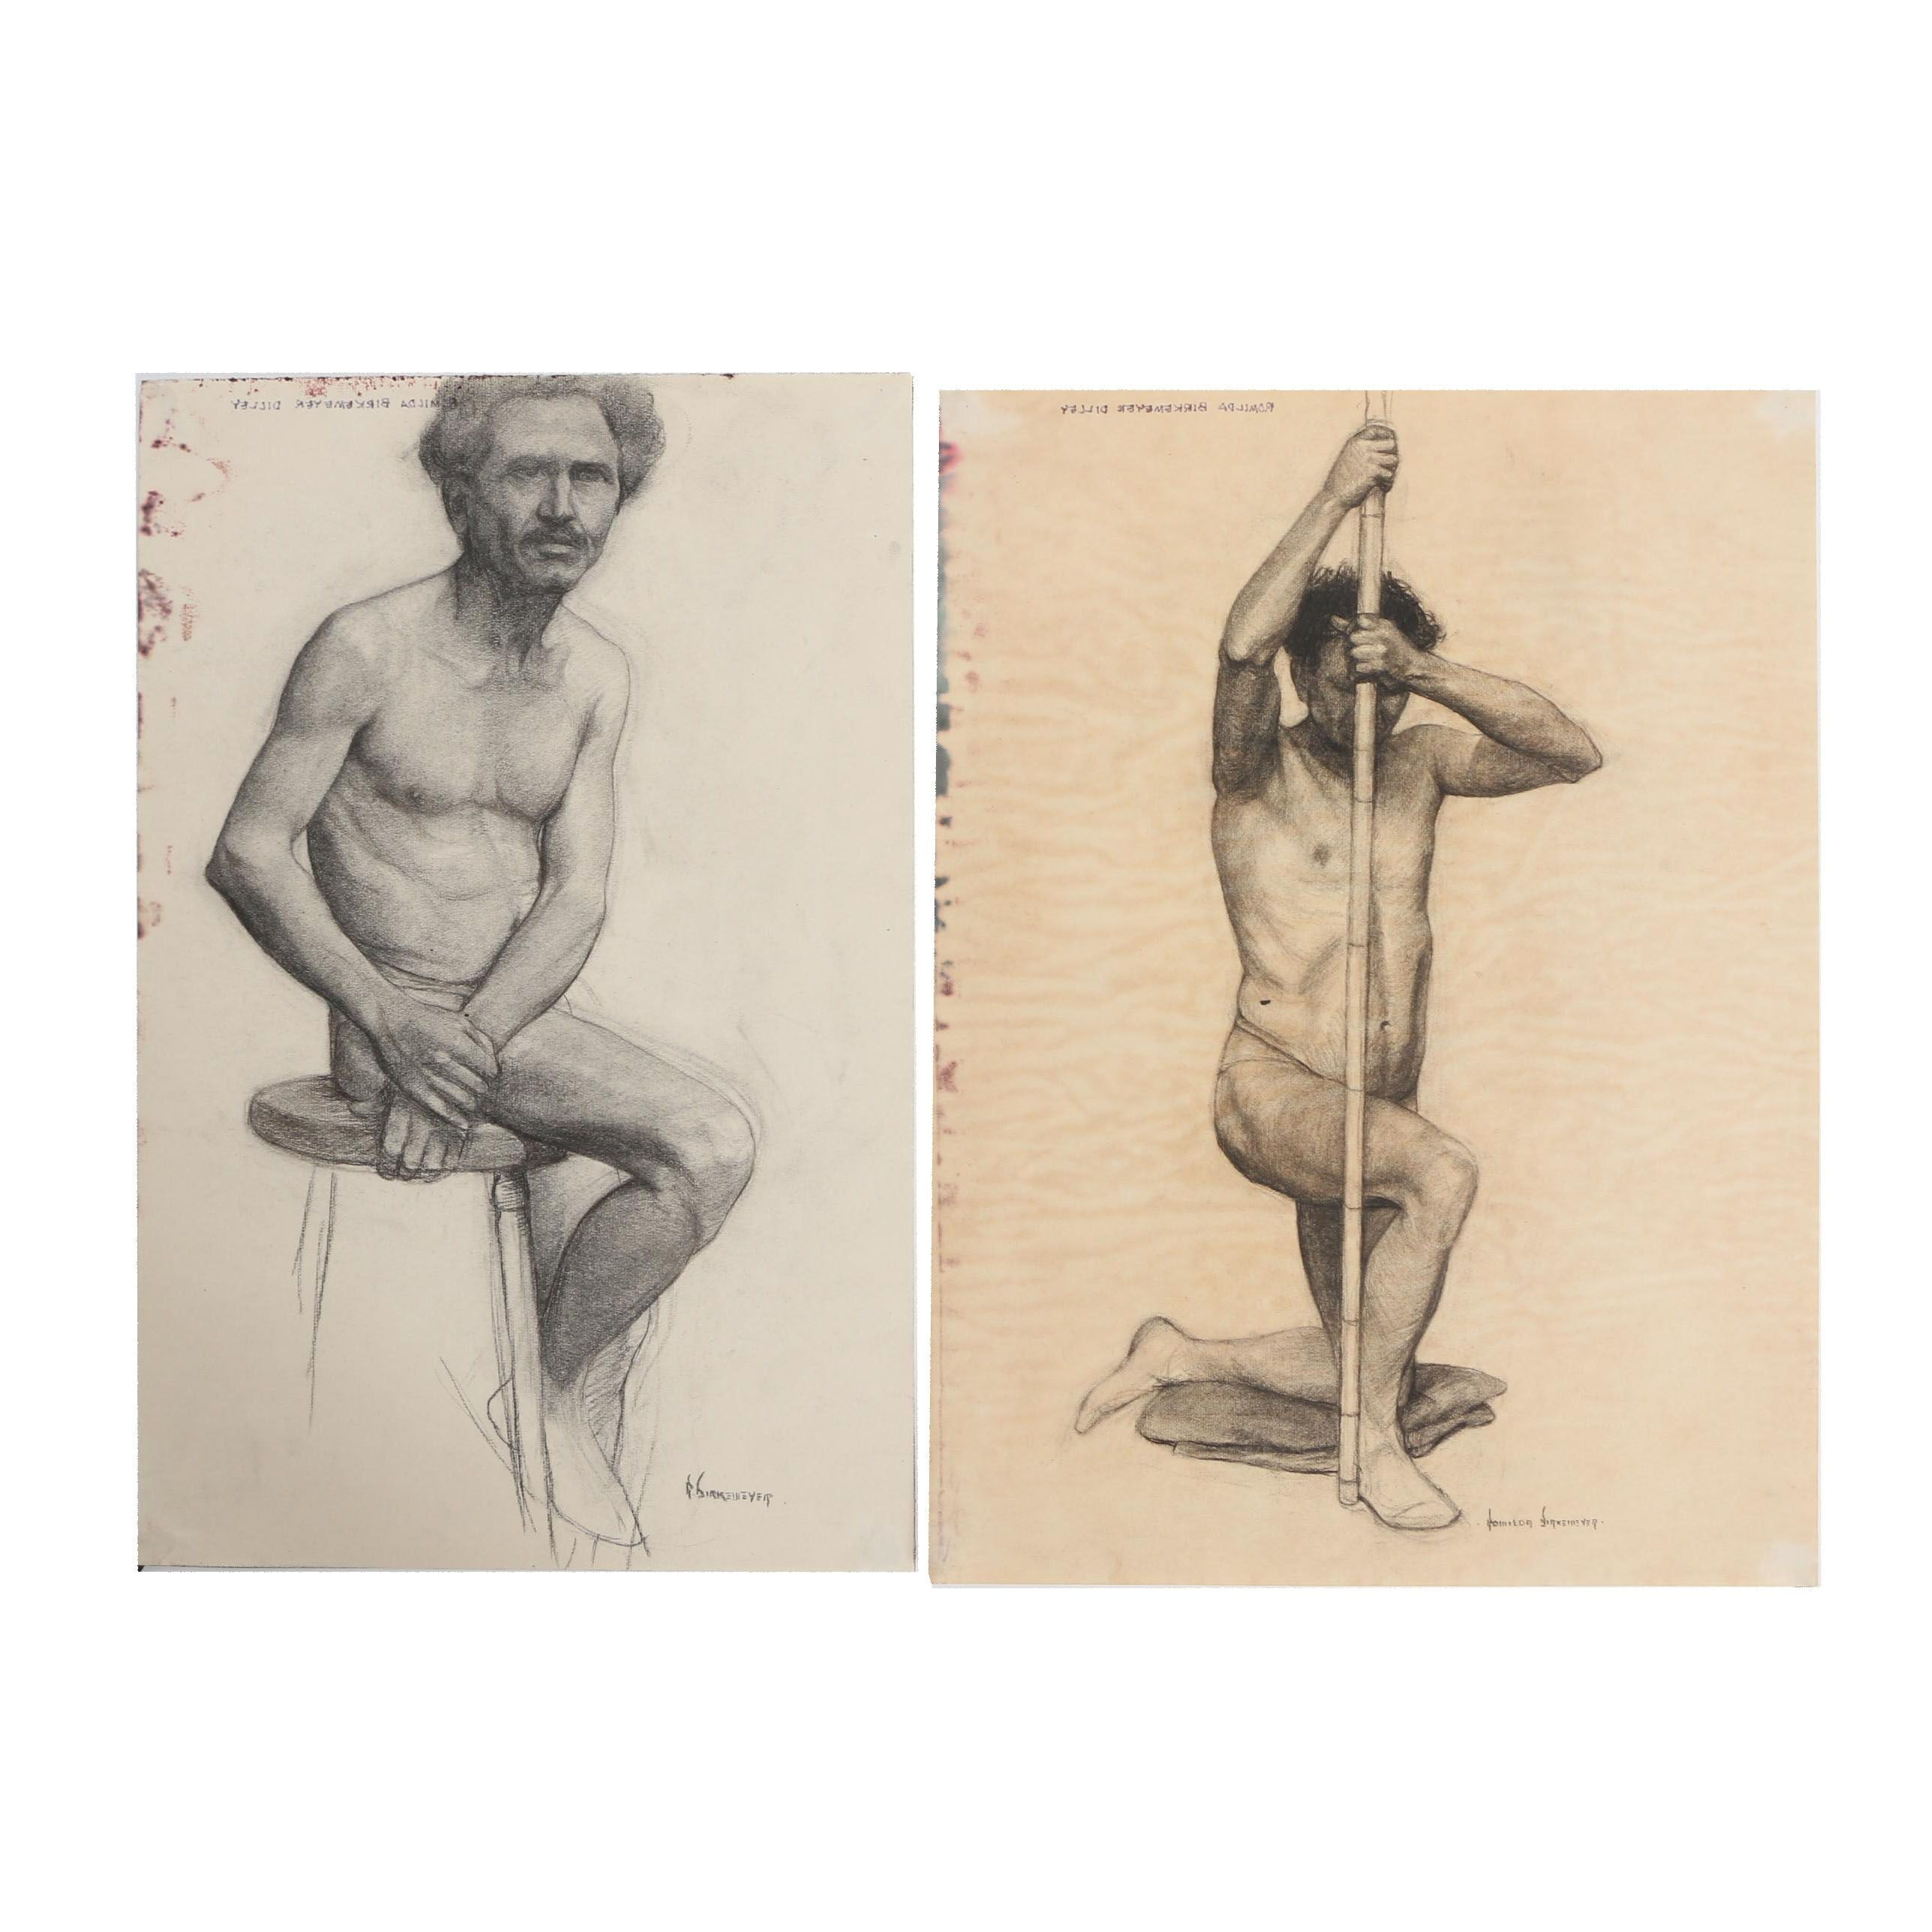 Romilda Birkemeyer Dilley Charcoal Drawings of Male Nudes